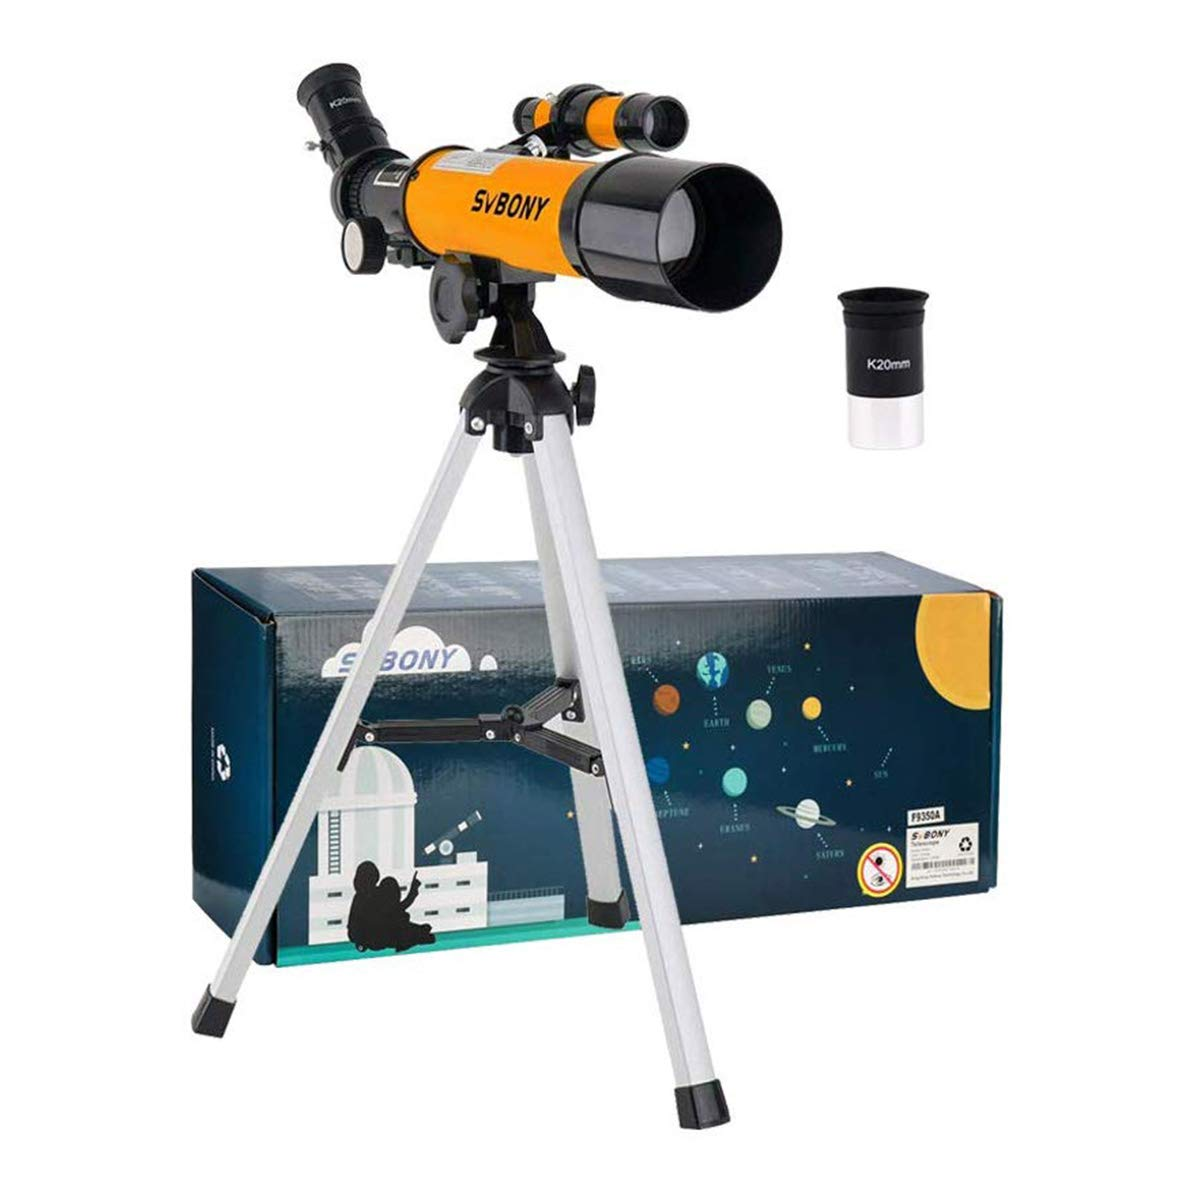 SVBONY SV502 Telescope for Kids 50mm Objective Lens and 5X20 Finder Scope for Exploring Moon Science Education by SVBONY